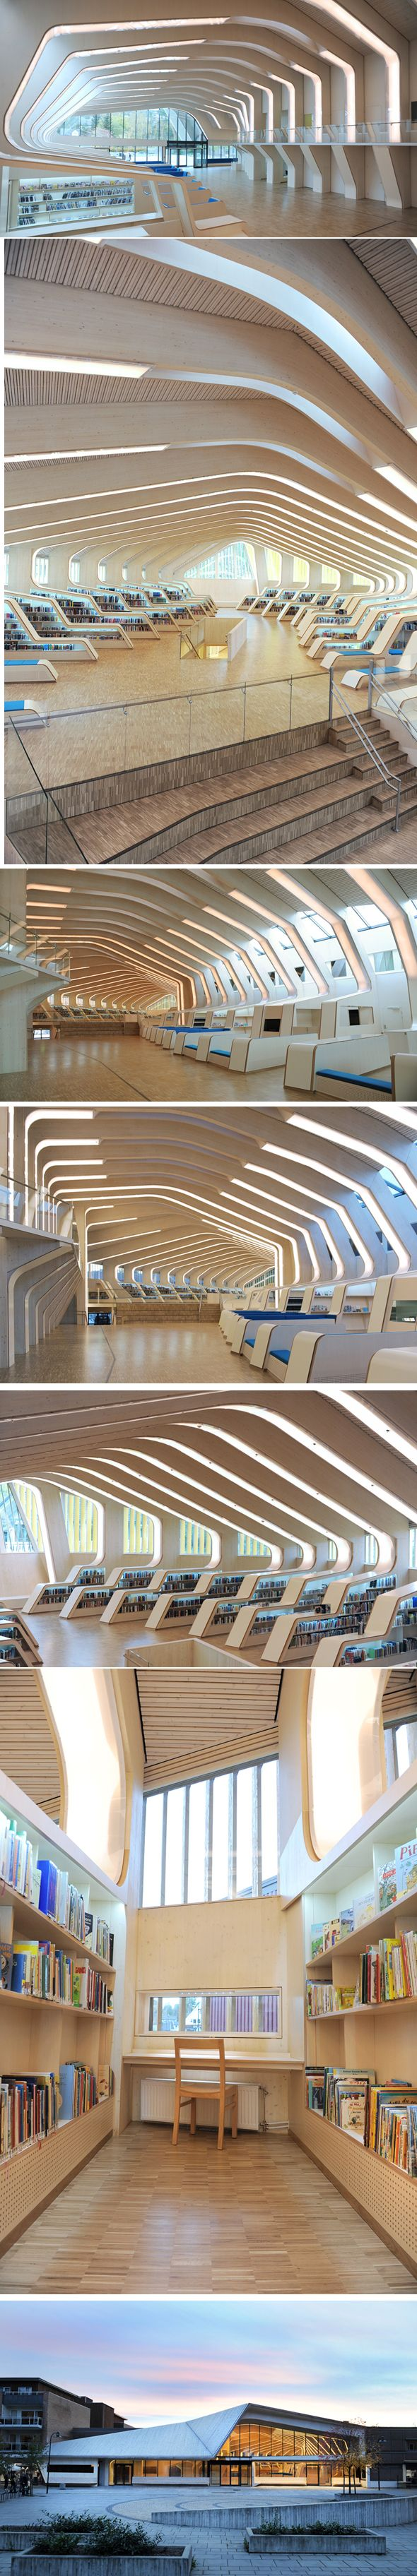 Vennesia library and cultural center - Norway